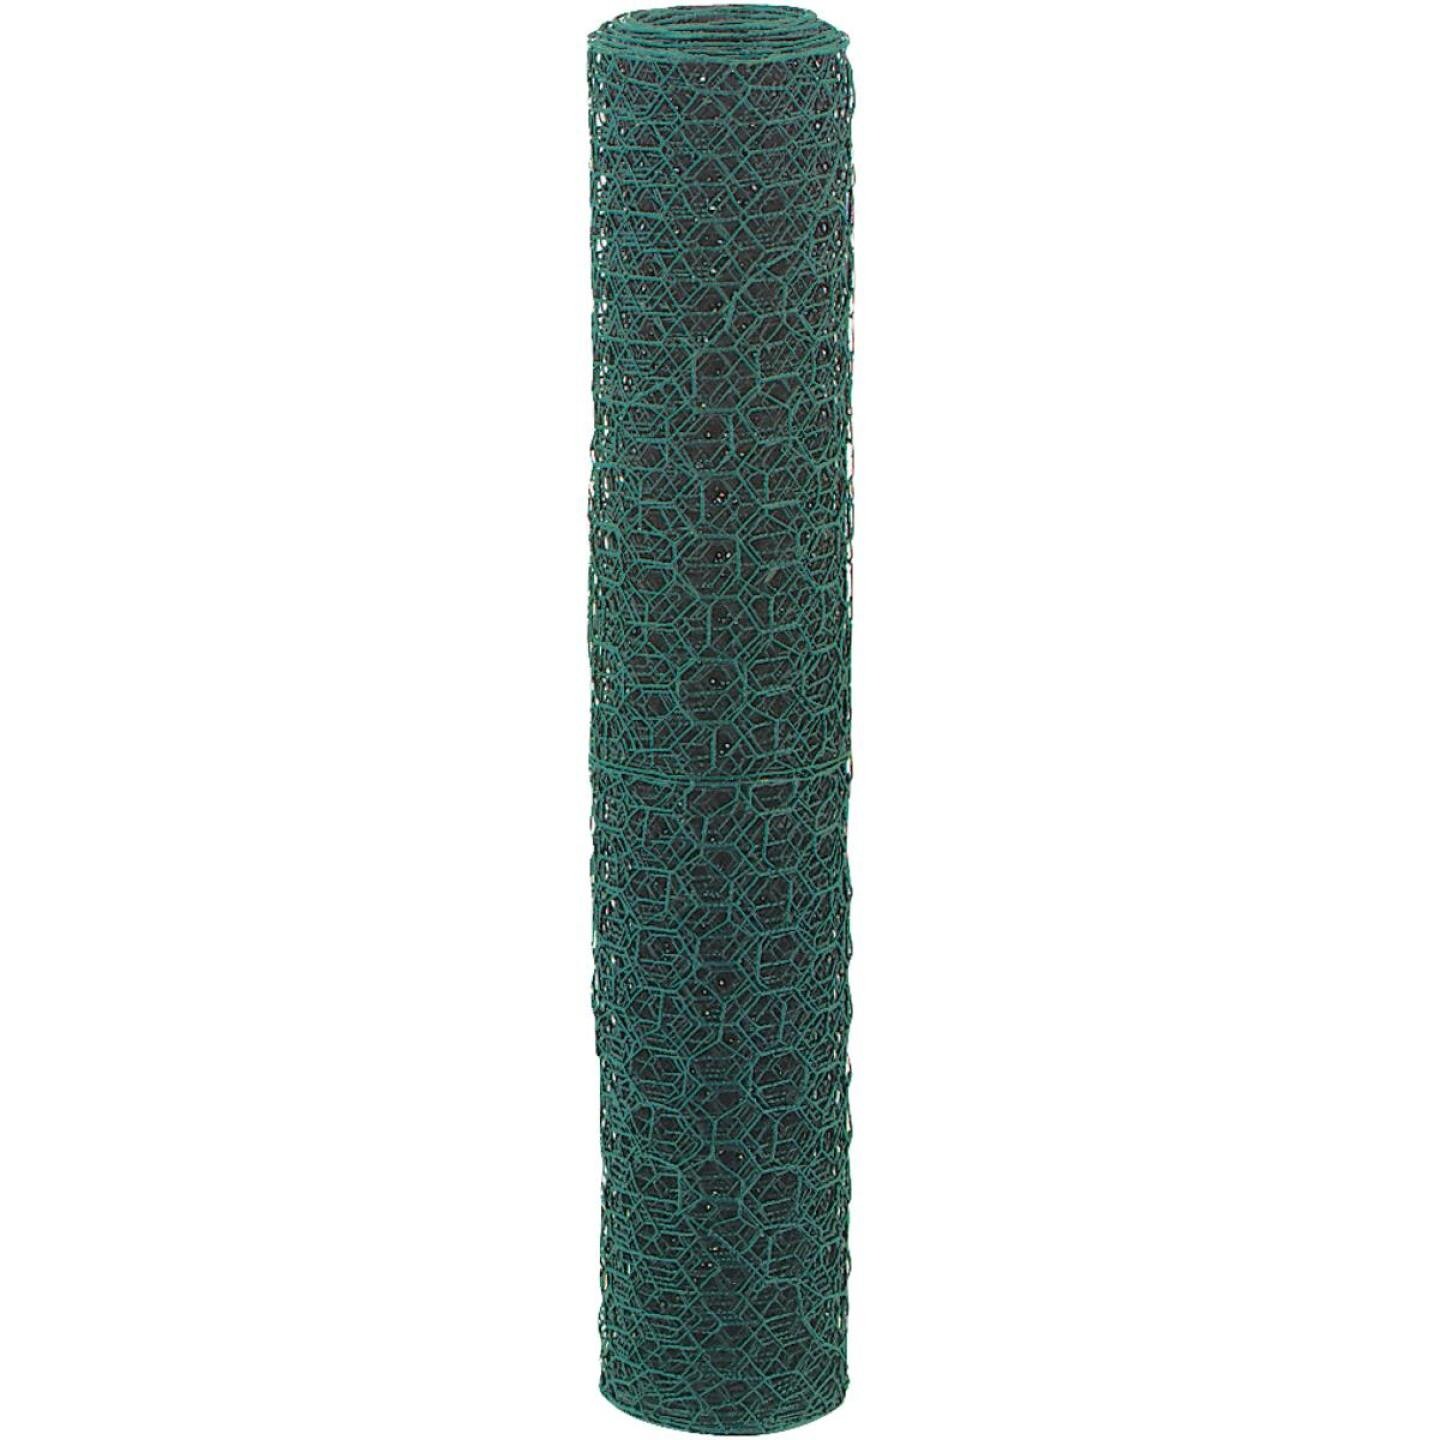 1 In. x 36 In. H. x 25 Ft. L. Green Vinyl-Coated Poultry Netting Image 3